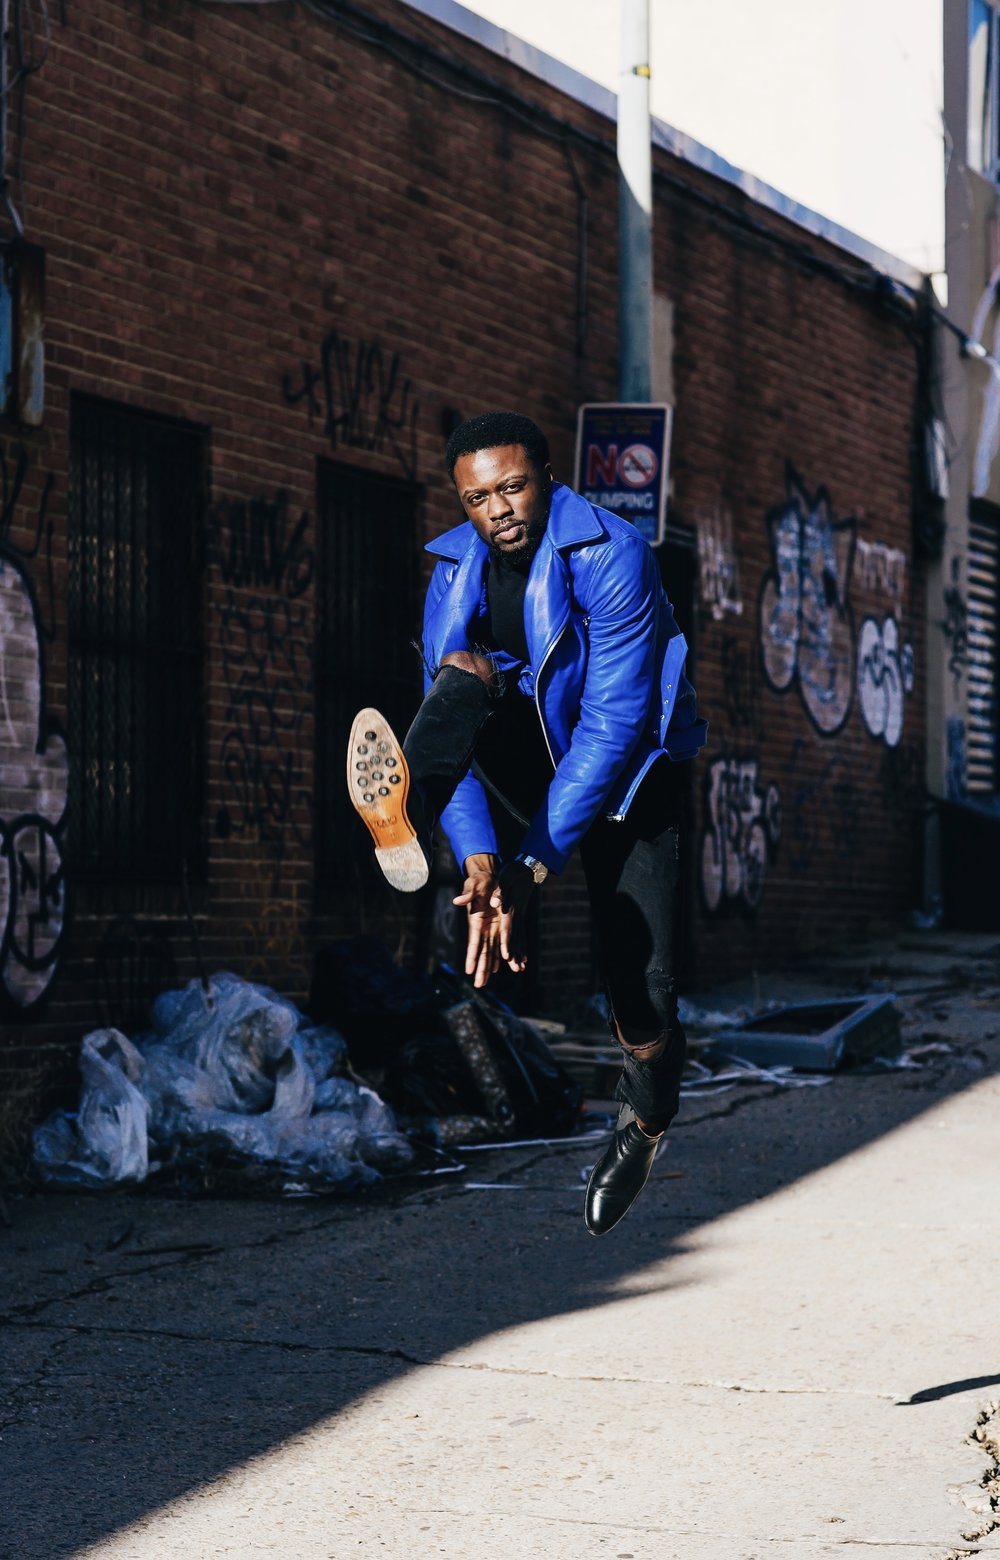 Brand influencer the creative gentleman wearing, royal blue leather jacket, black ripped jeans, and black Chelsea boots from Taft. He is jumping in the air clapping his hands between his legs.